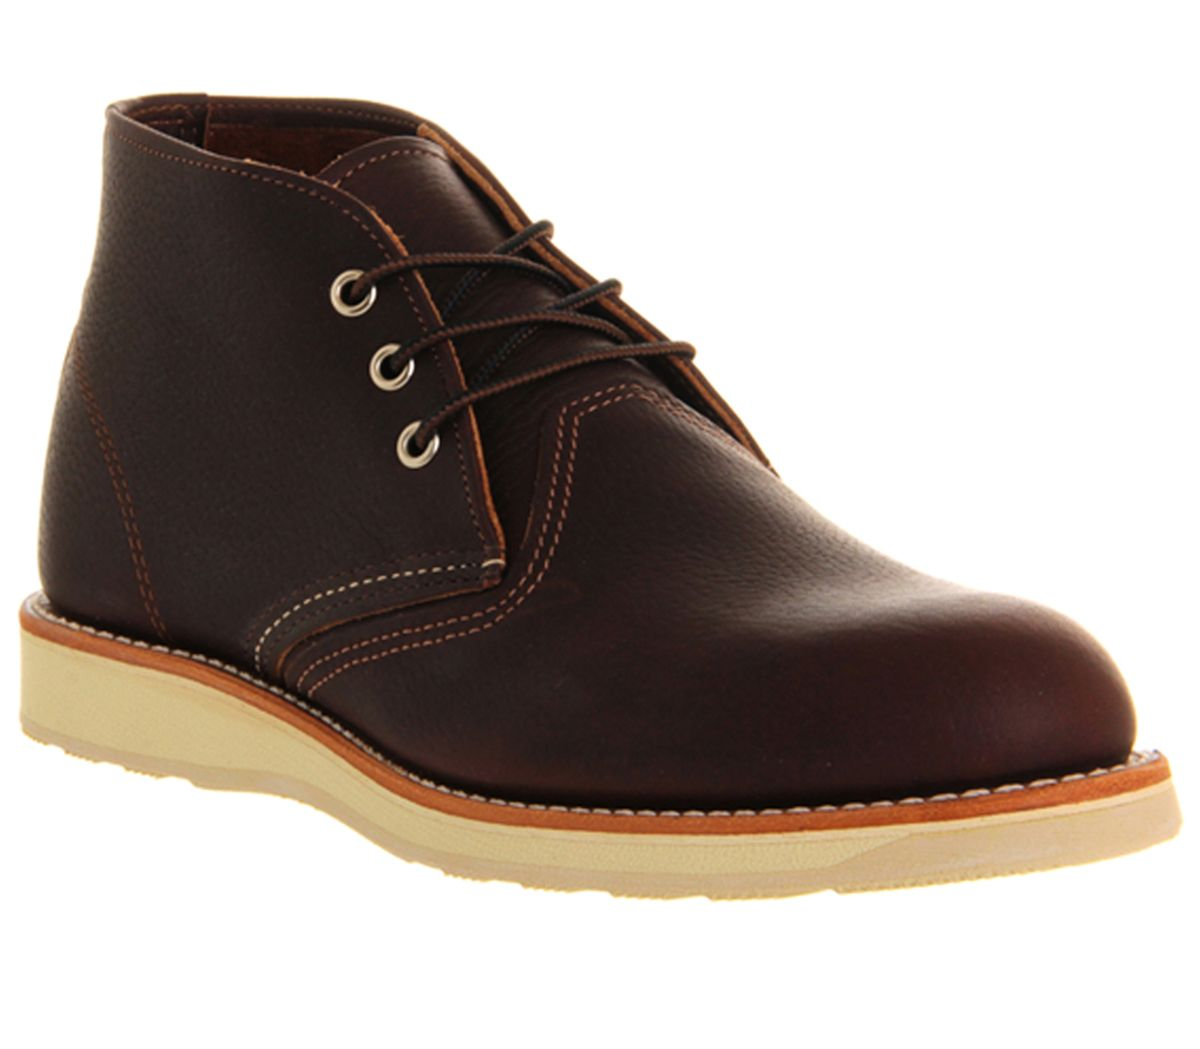 Redwing Work Chukka Boots Brown Leather Boots